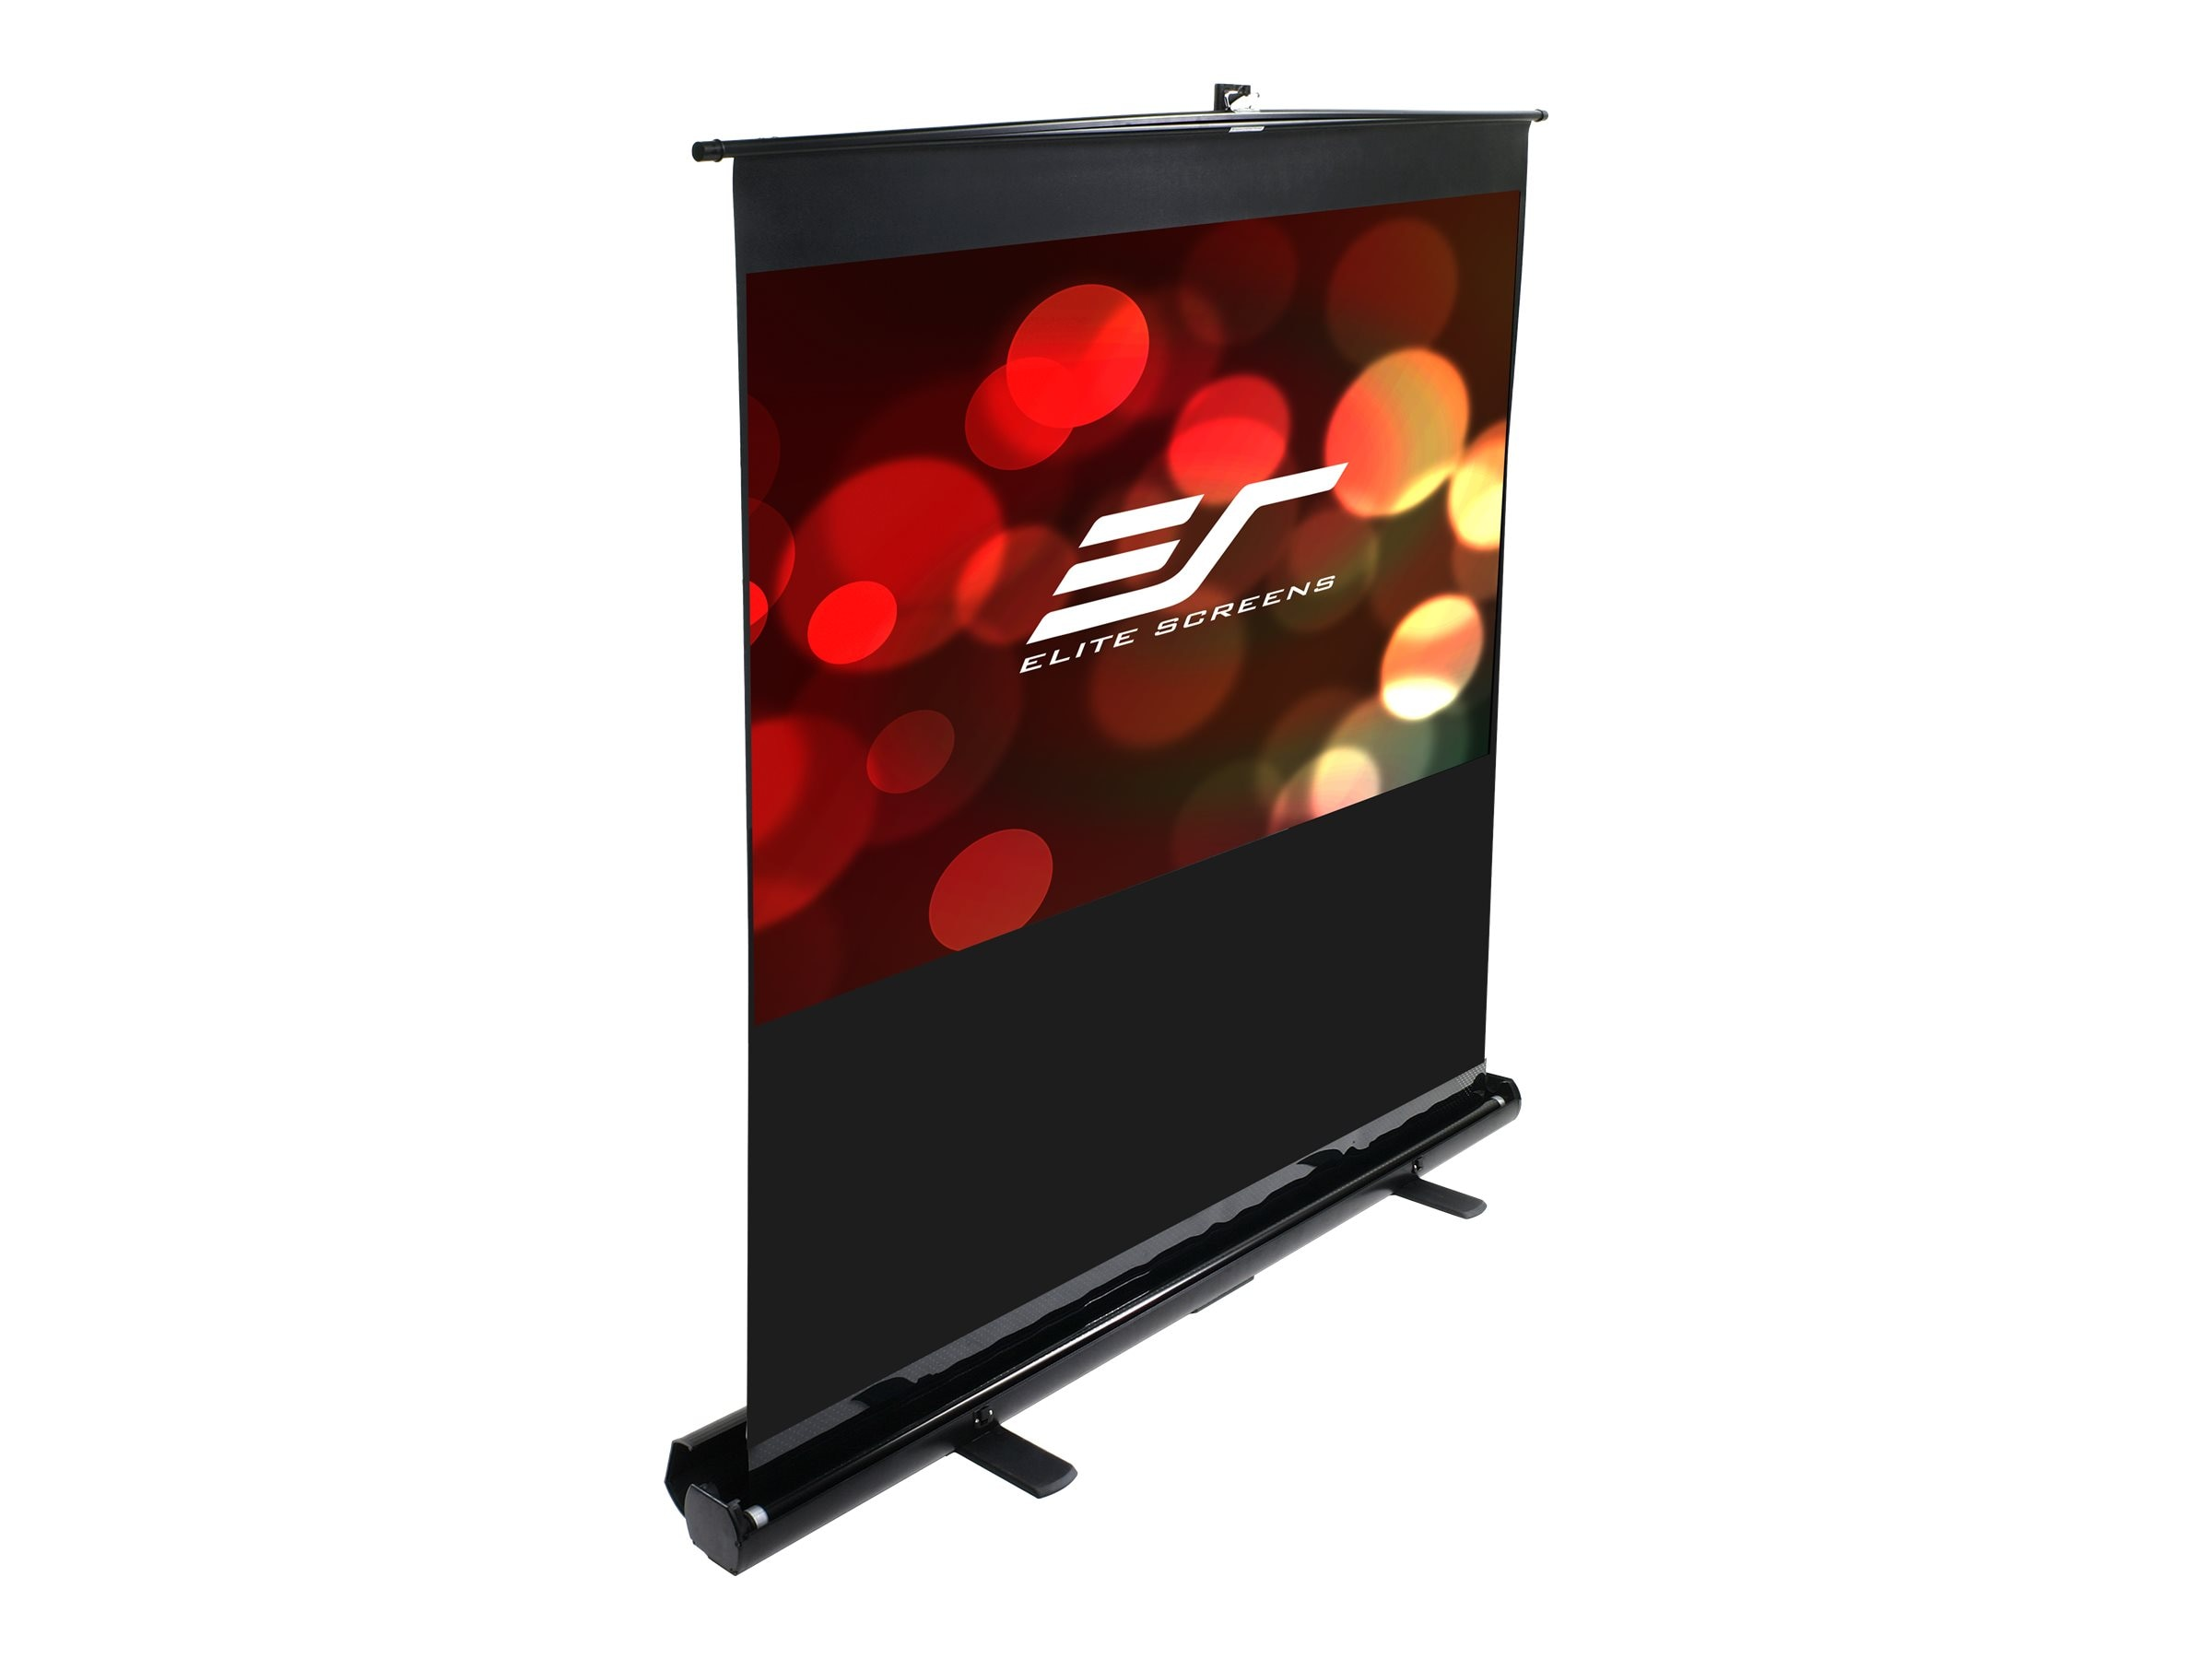 Elite ez-Cinema Series Projection Screen, Matte White, 16:9, 49 x 87in, F100NWH